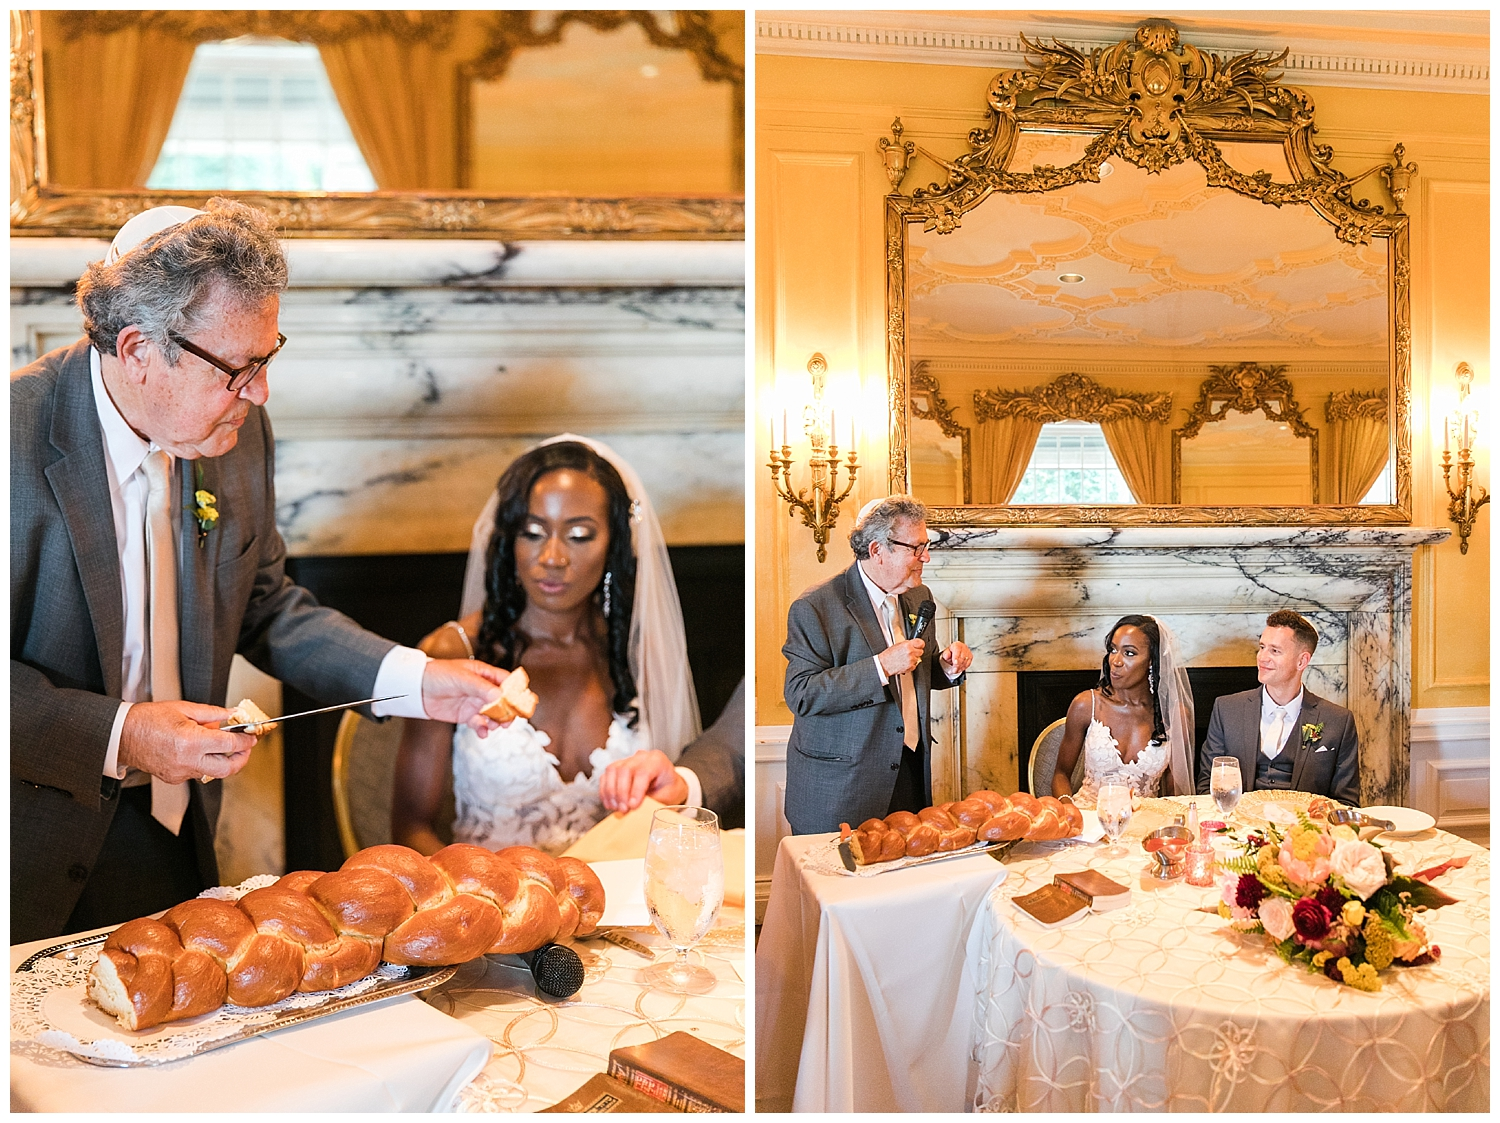 the father of the groom performed the blessing of the challah.